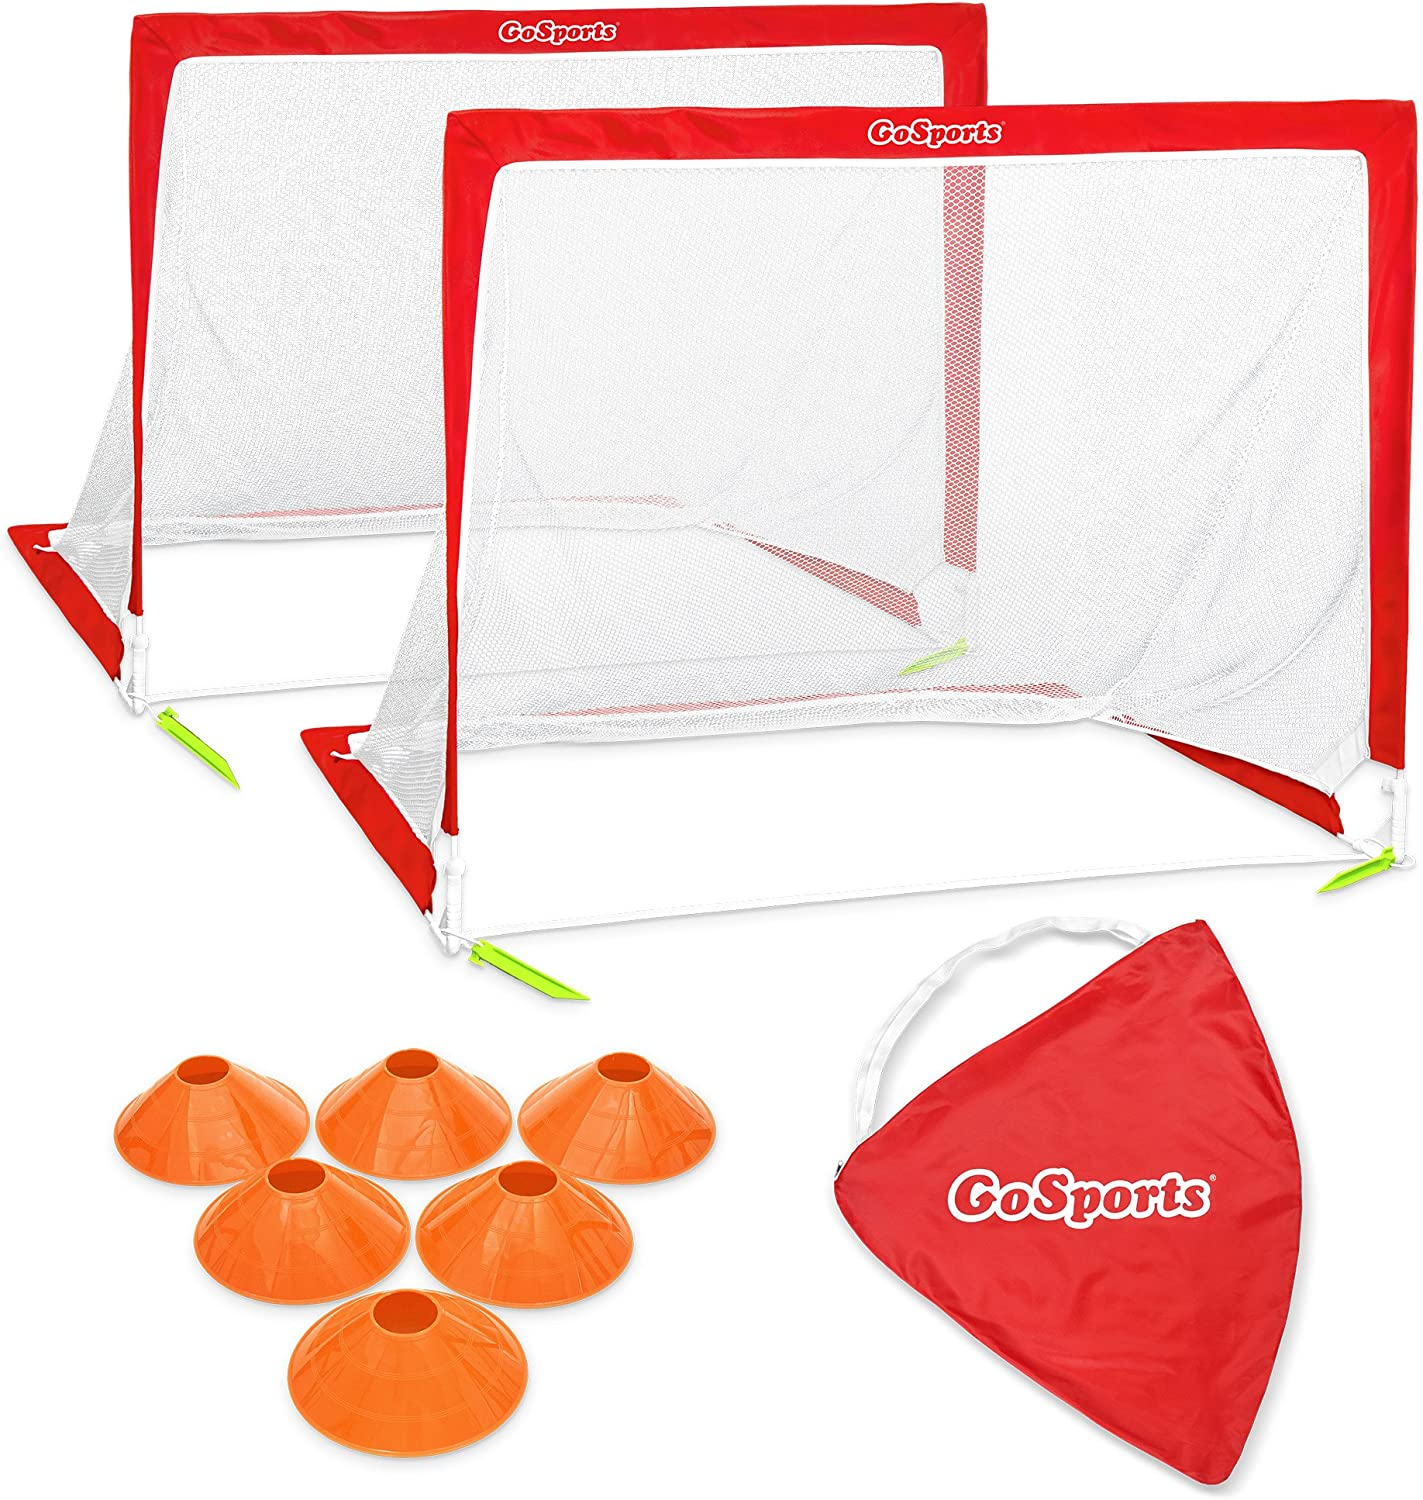 GoSports Foldable Pop Up Soccer Goal Nets, Set of 2, With Agility Training Cones and Portable Carrying Case for Kids & Adults